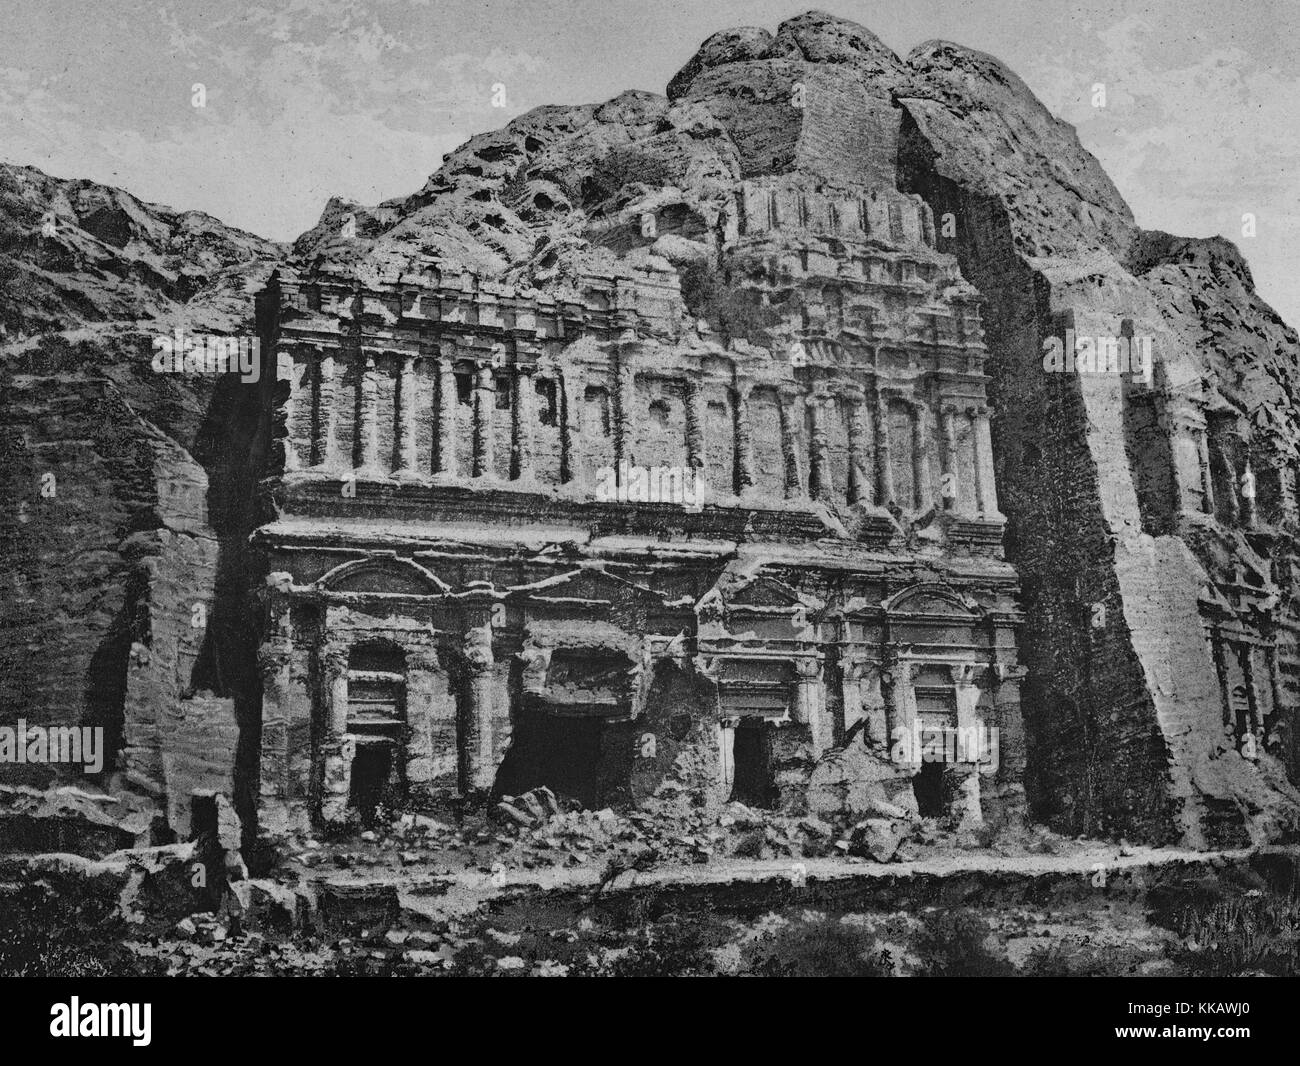 A photograph of the rock-cut architecture of the city of Petra, it was the capital city of the Arab Nabataeans, - Stock Image